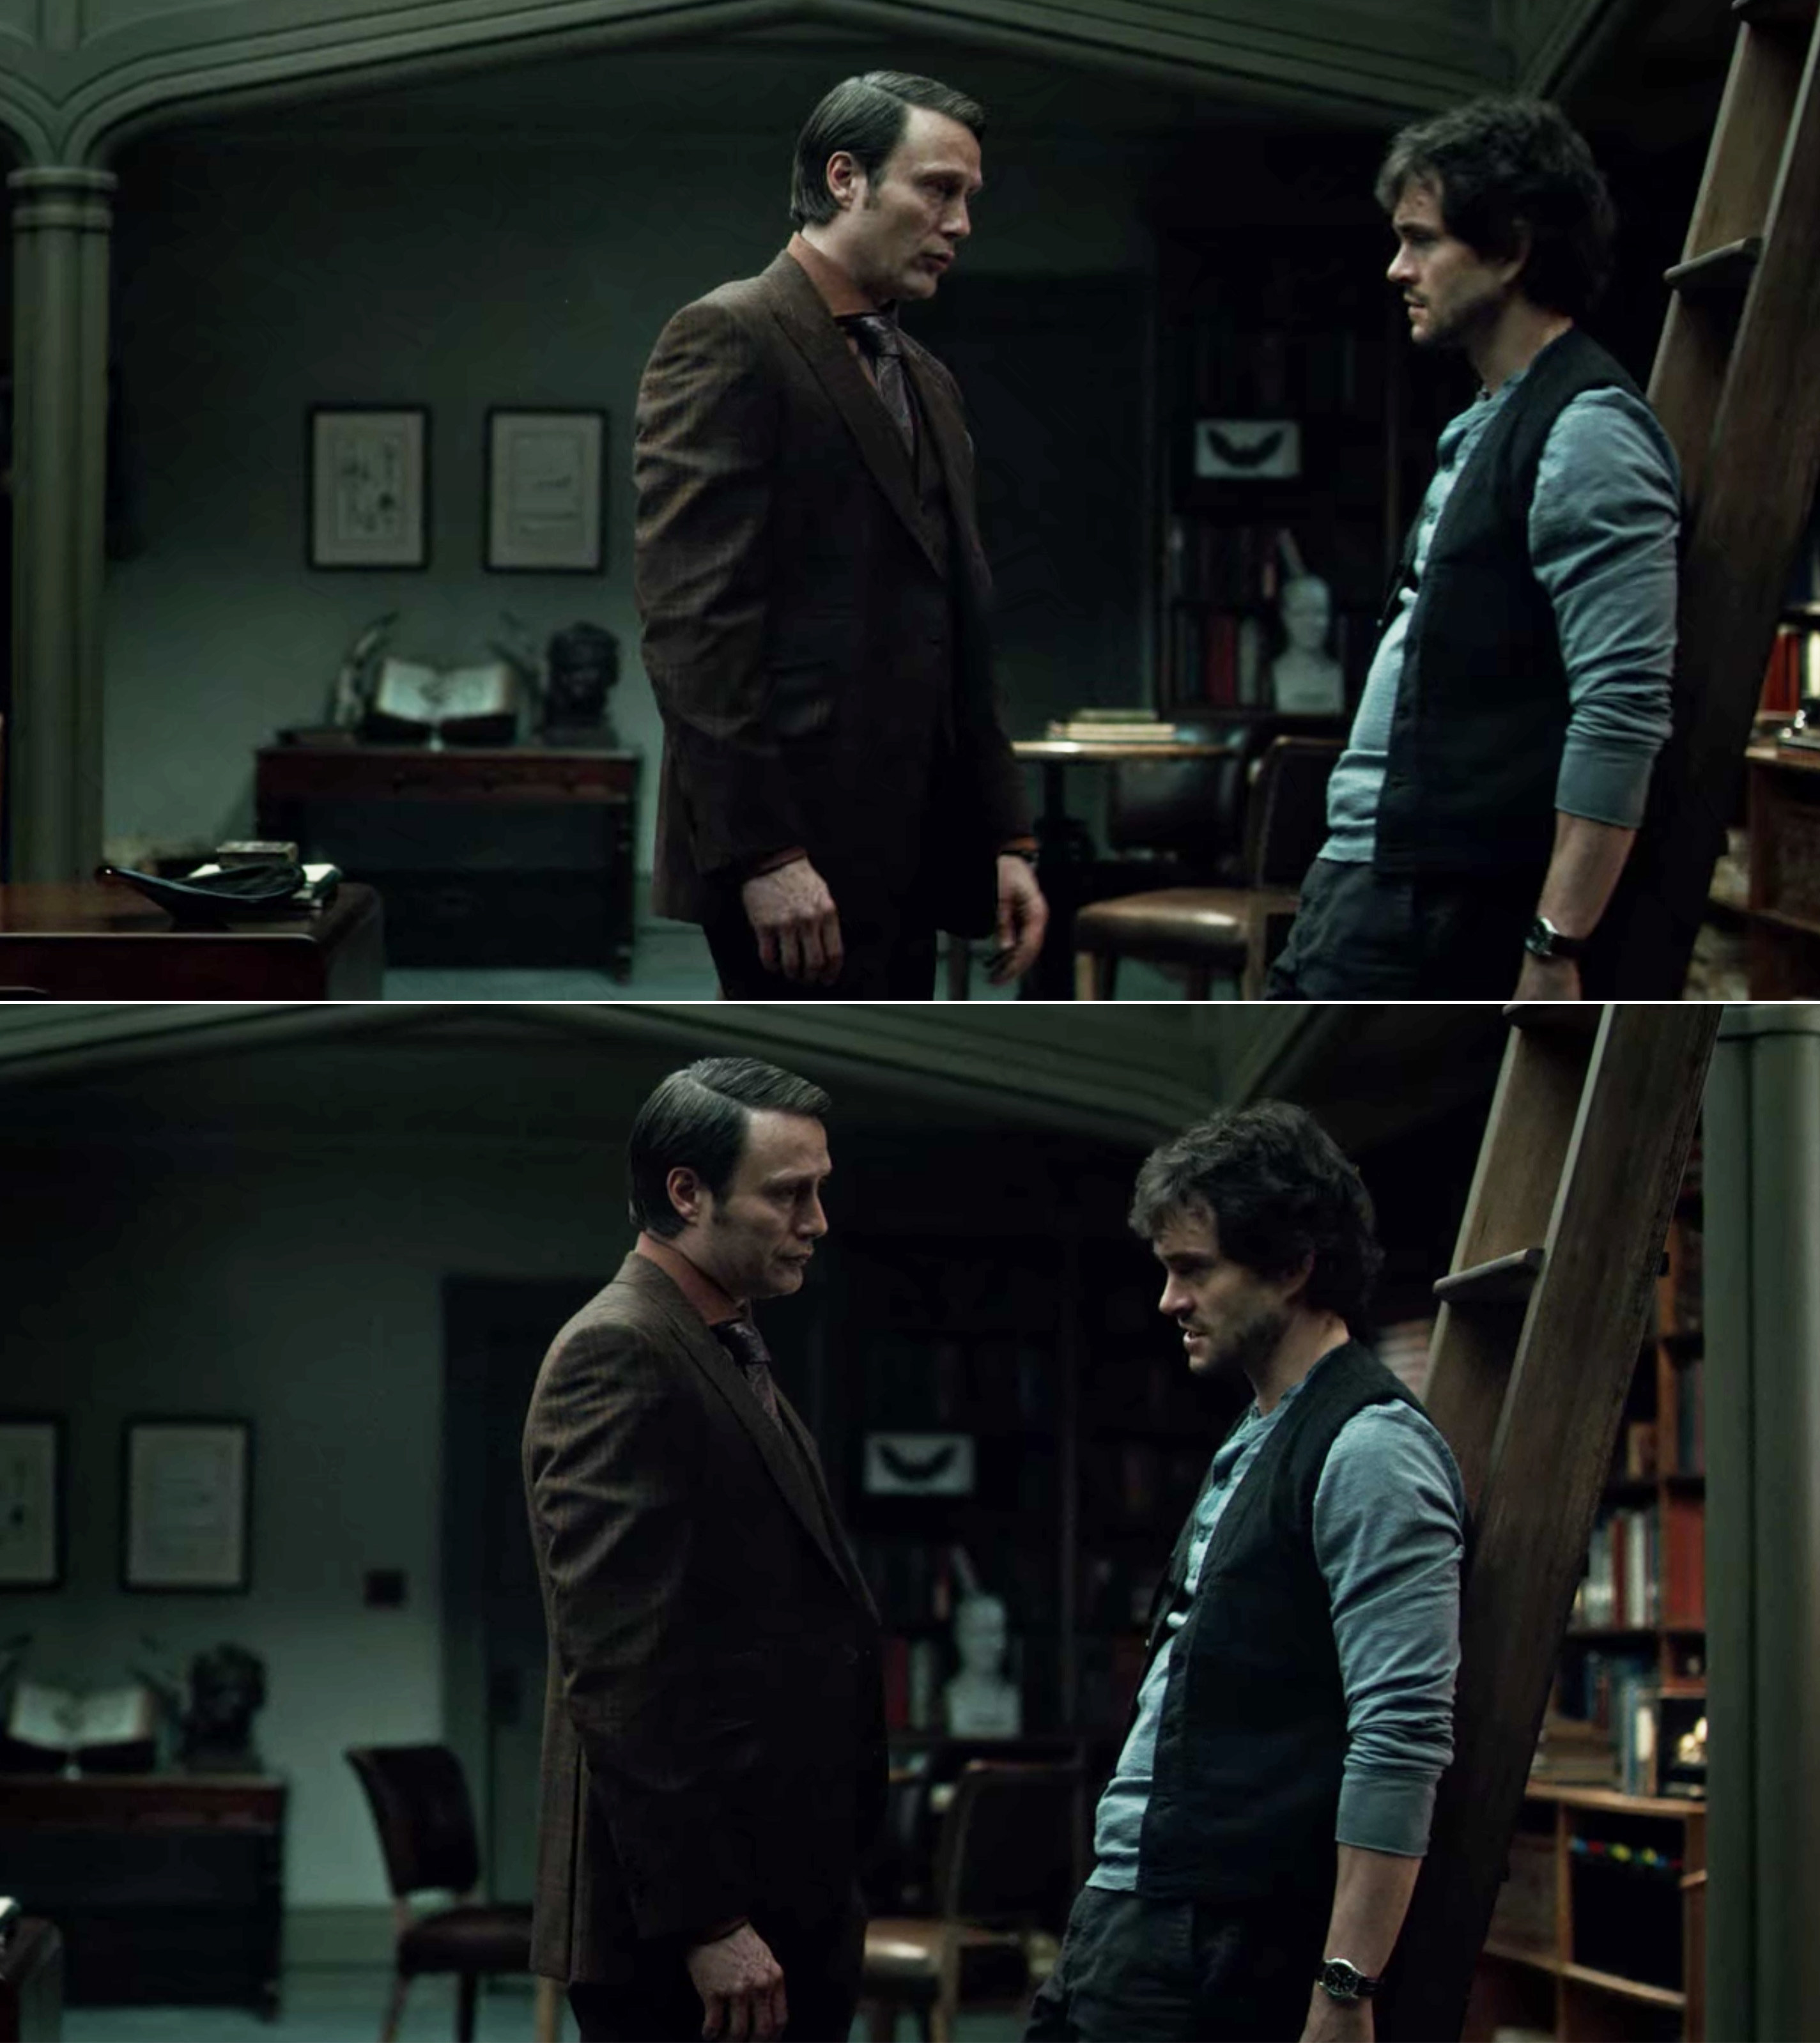 Hannibal and Will looking at each other, while Will leans up against a ladder